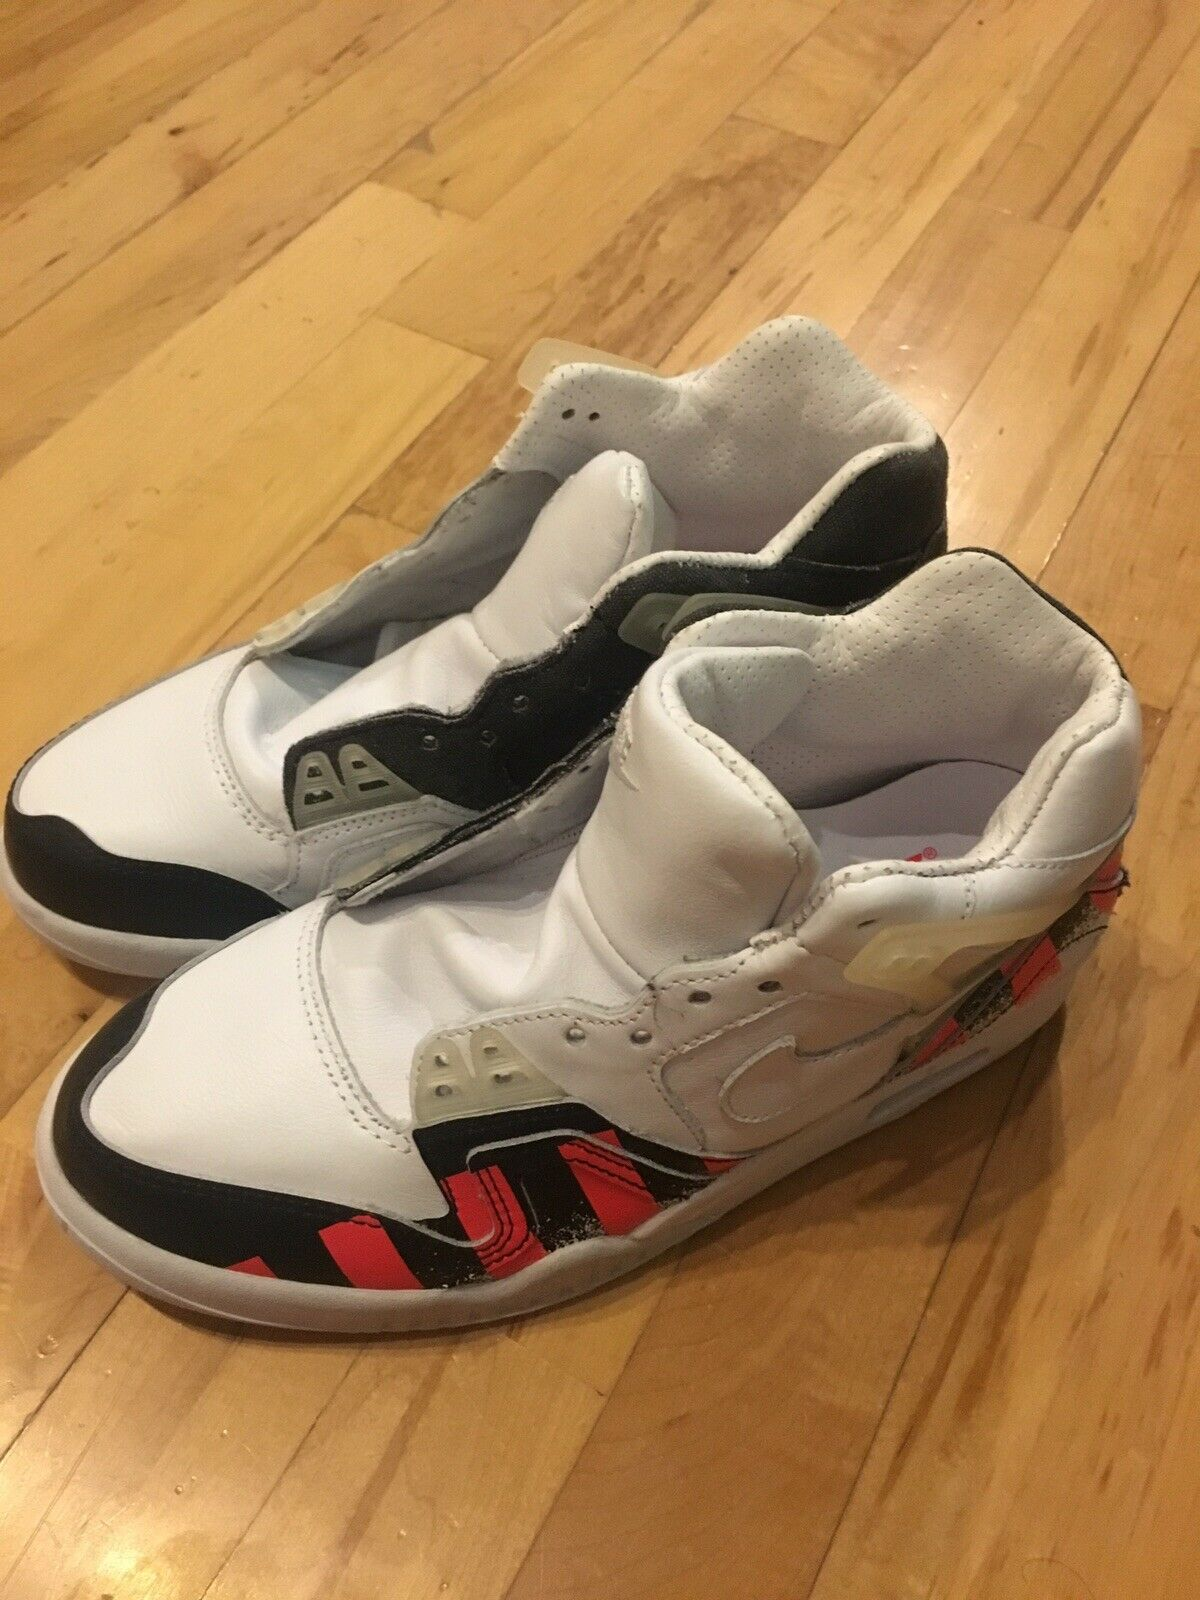 Air Tech Challenge 2 french Open Size 7.5 No Laces